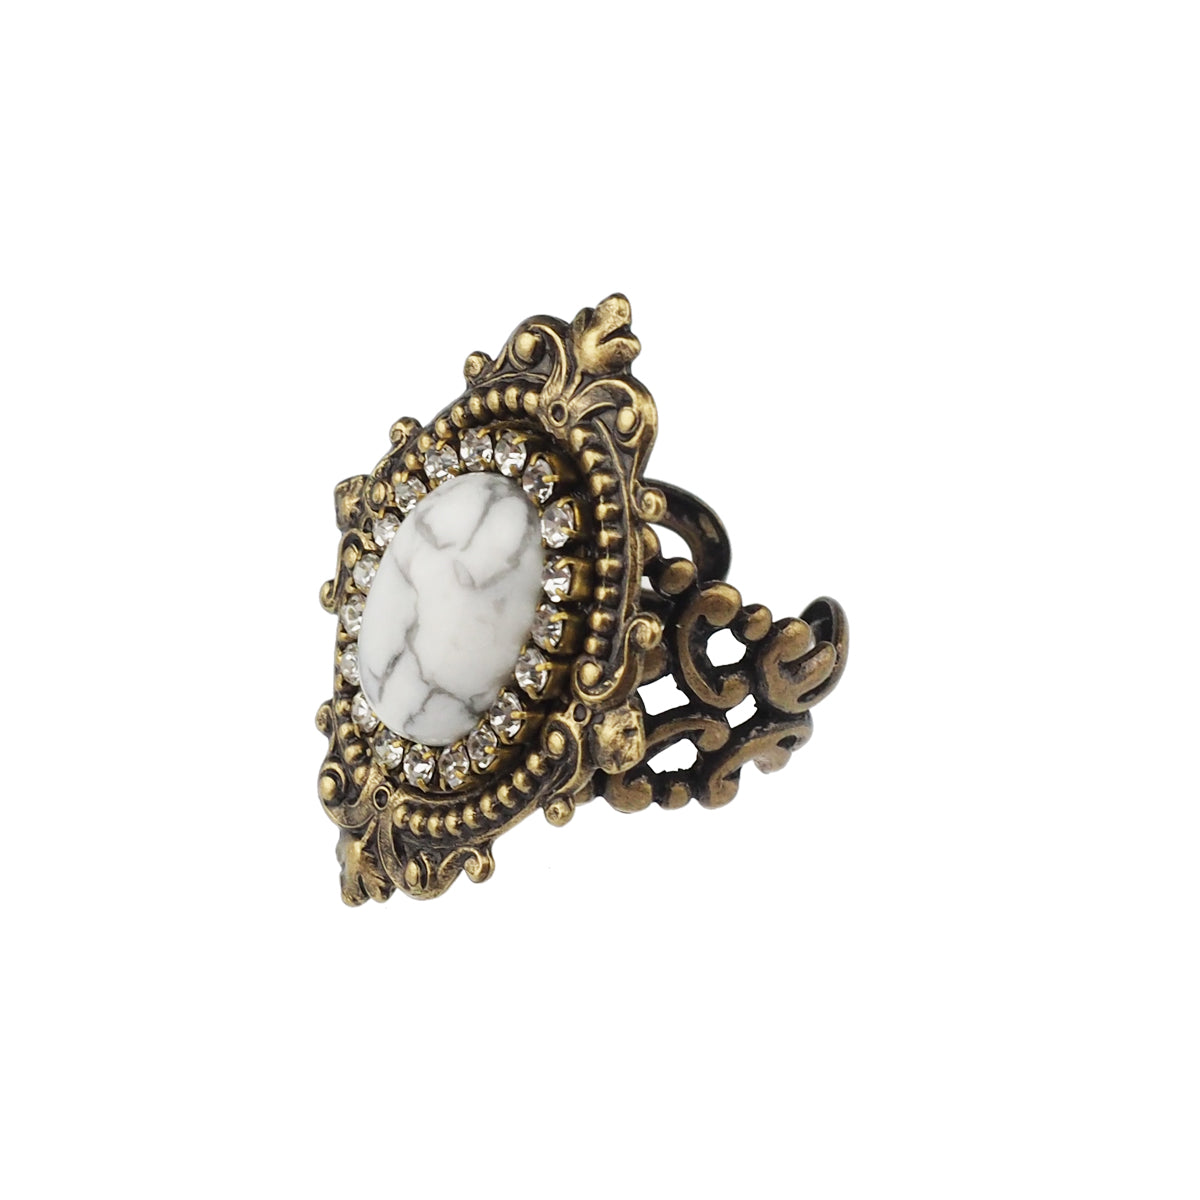 Reminiscence Ring - White Howlite